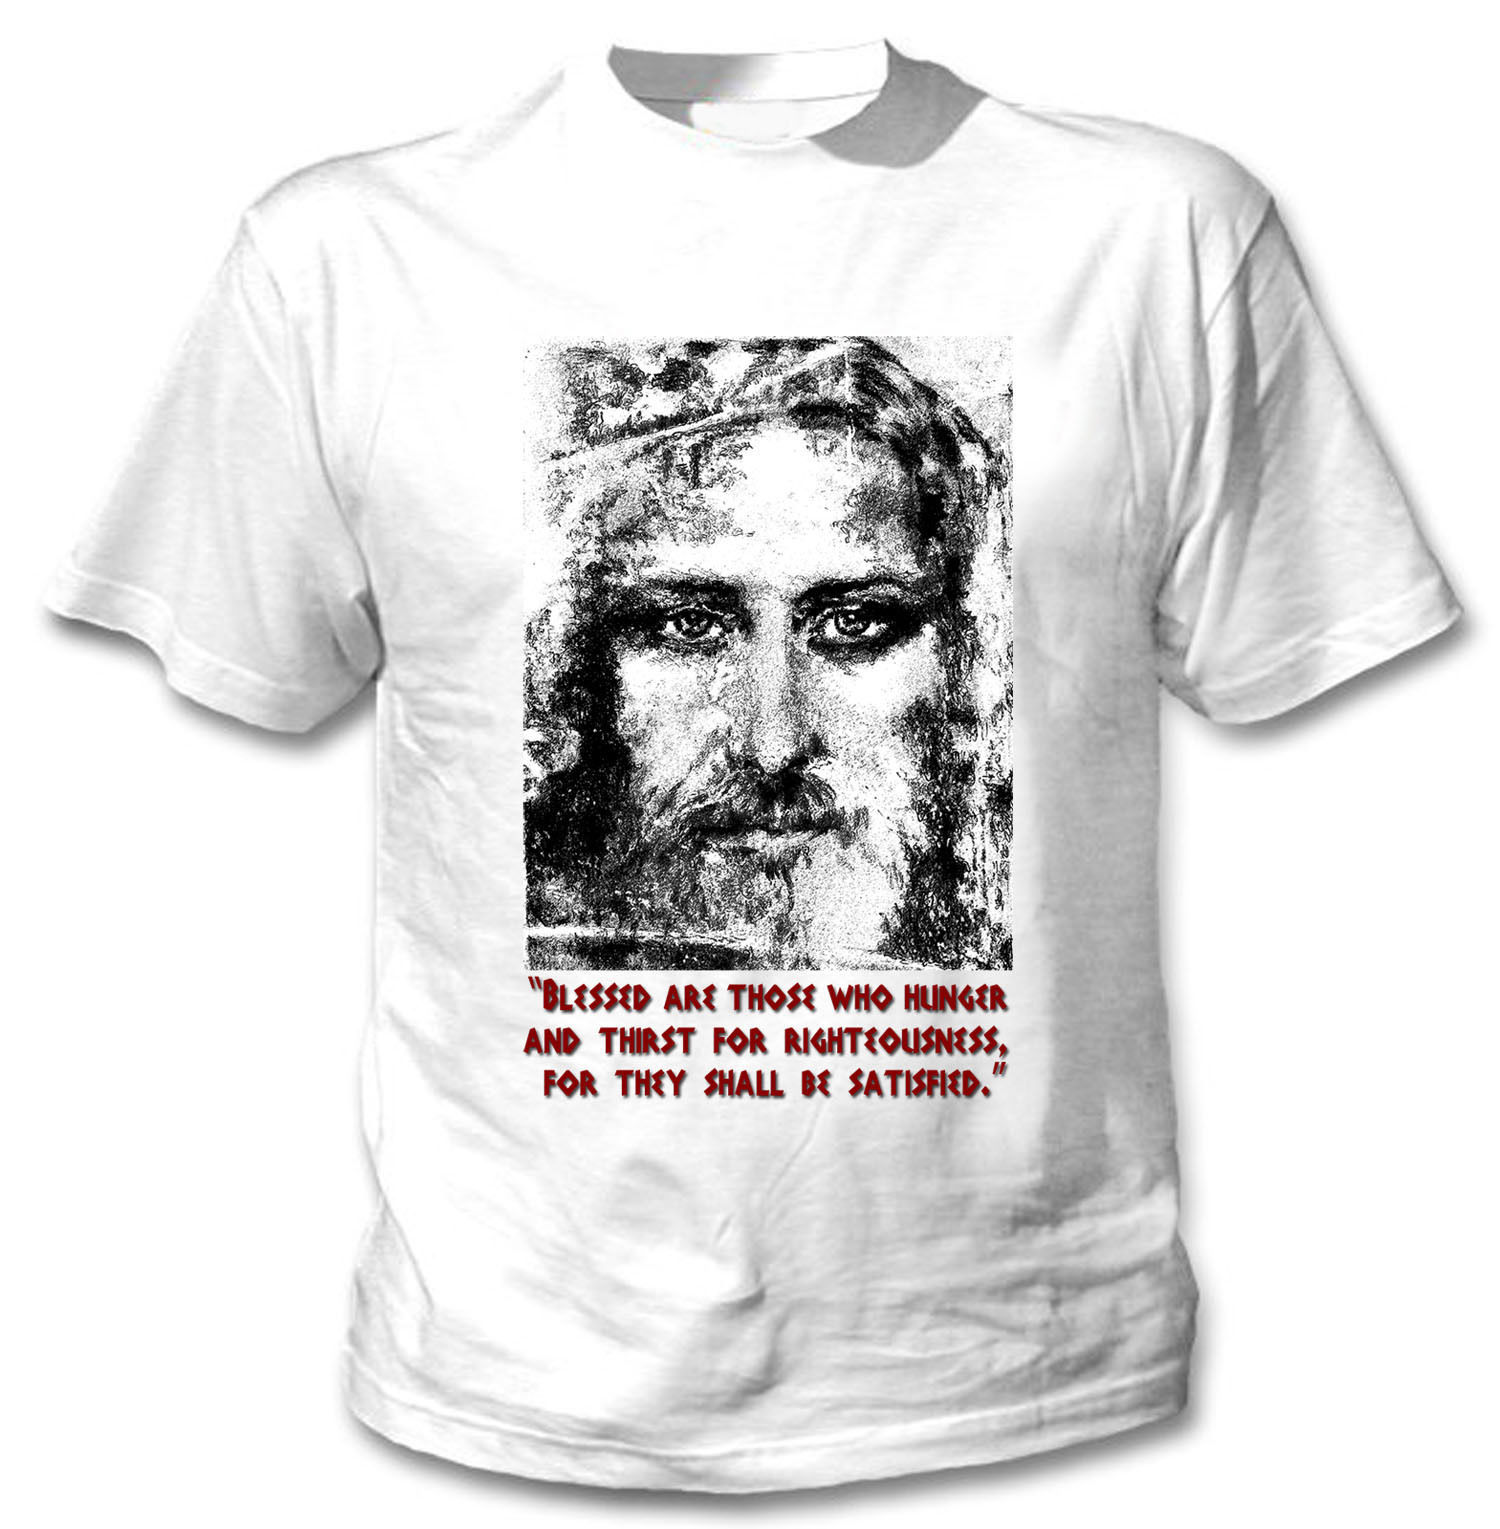 JESUS CHRIST QUOTE - NEW COTTON WHITE TSHIRT